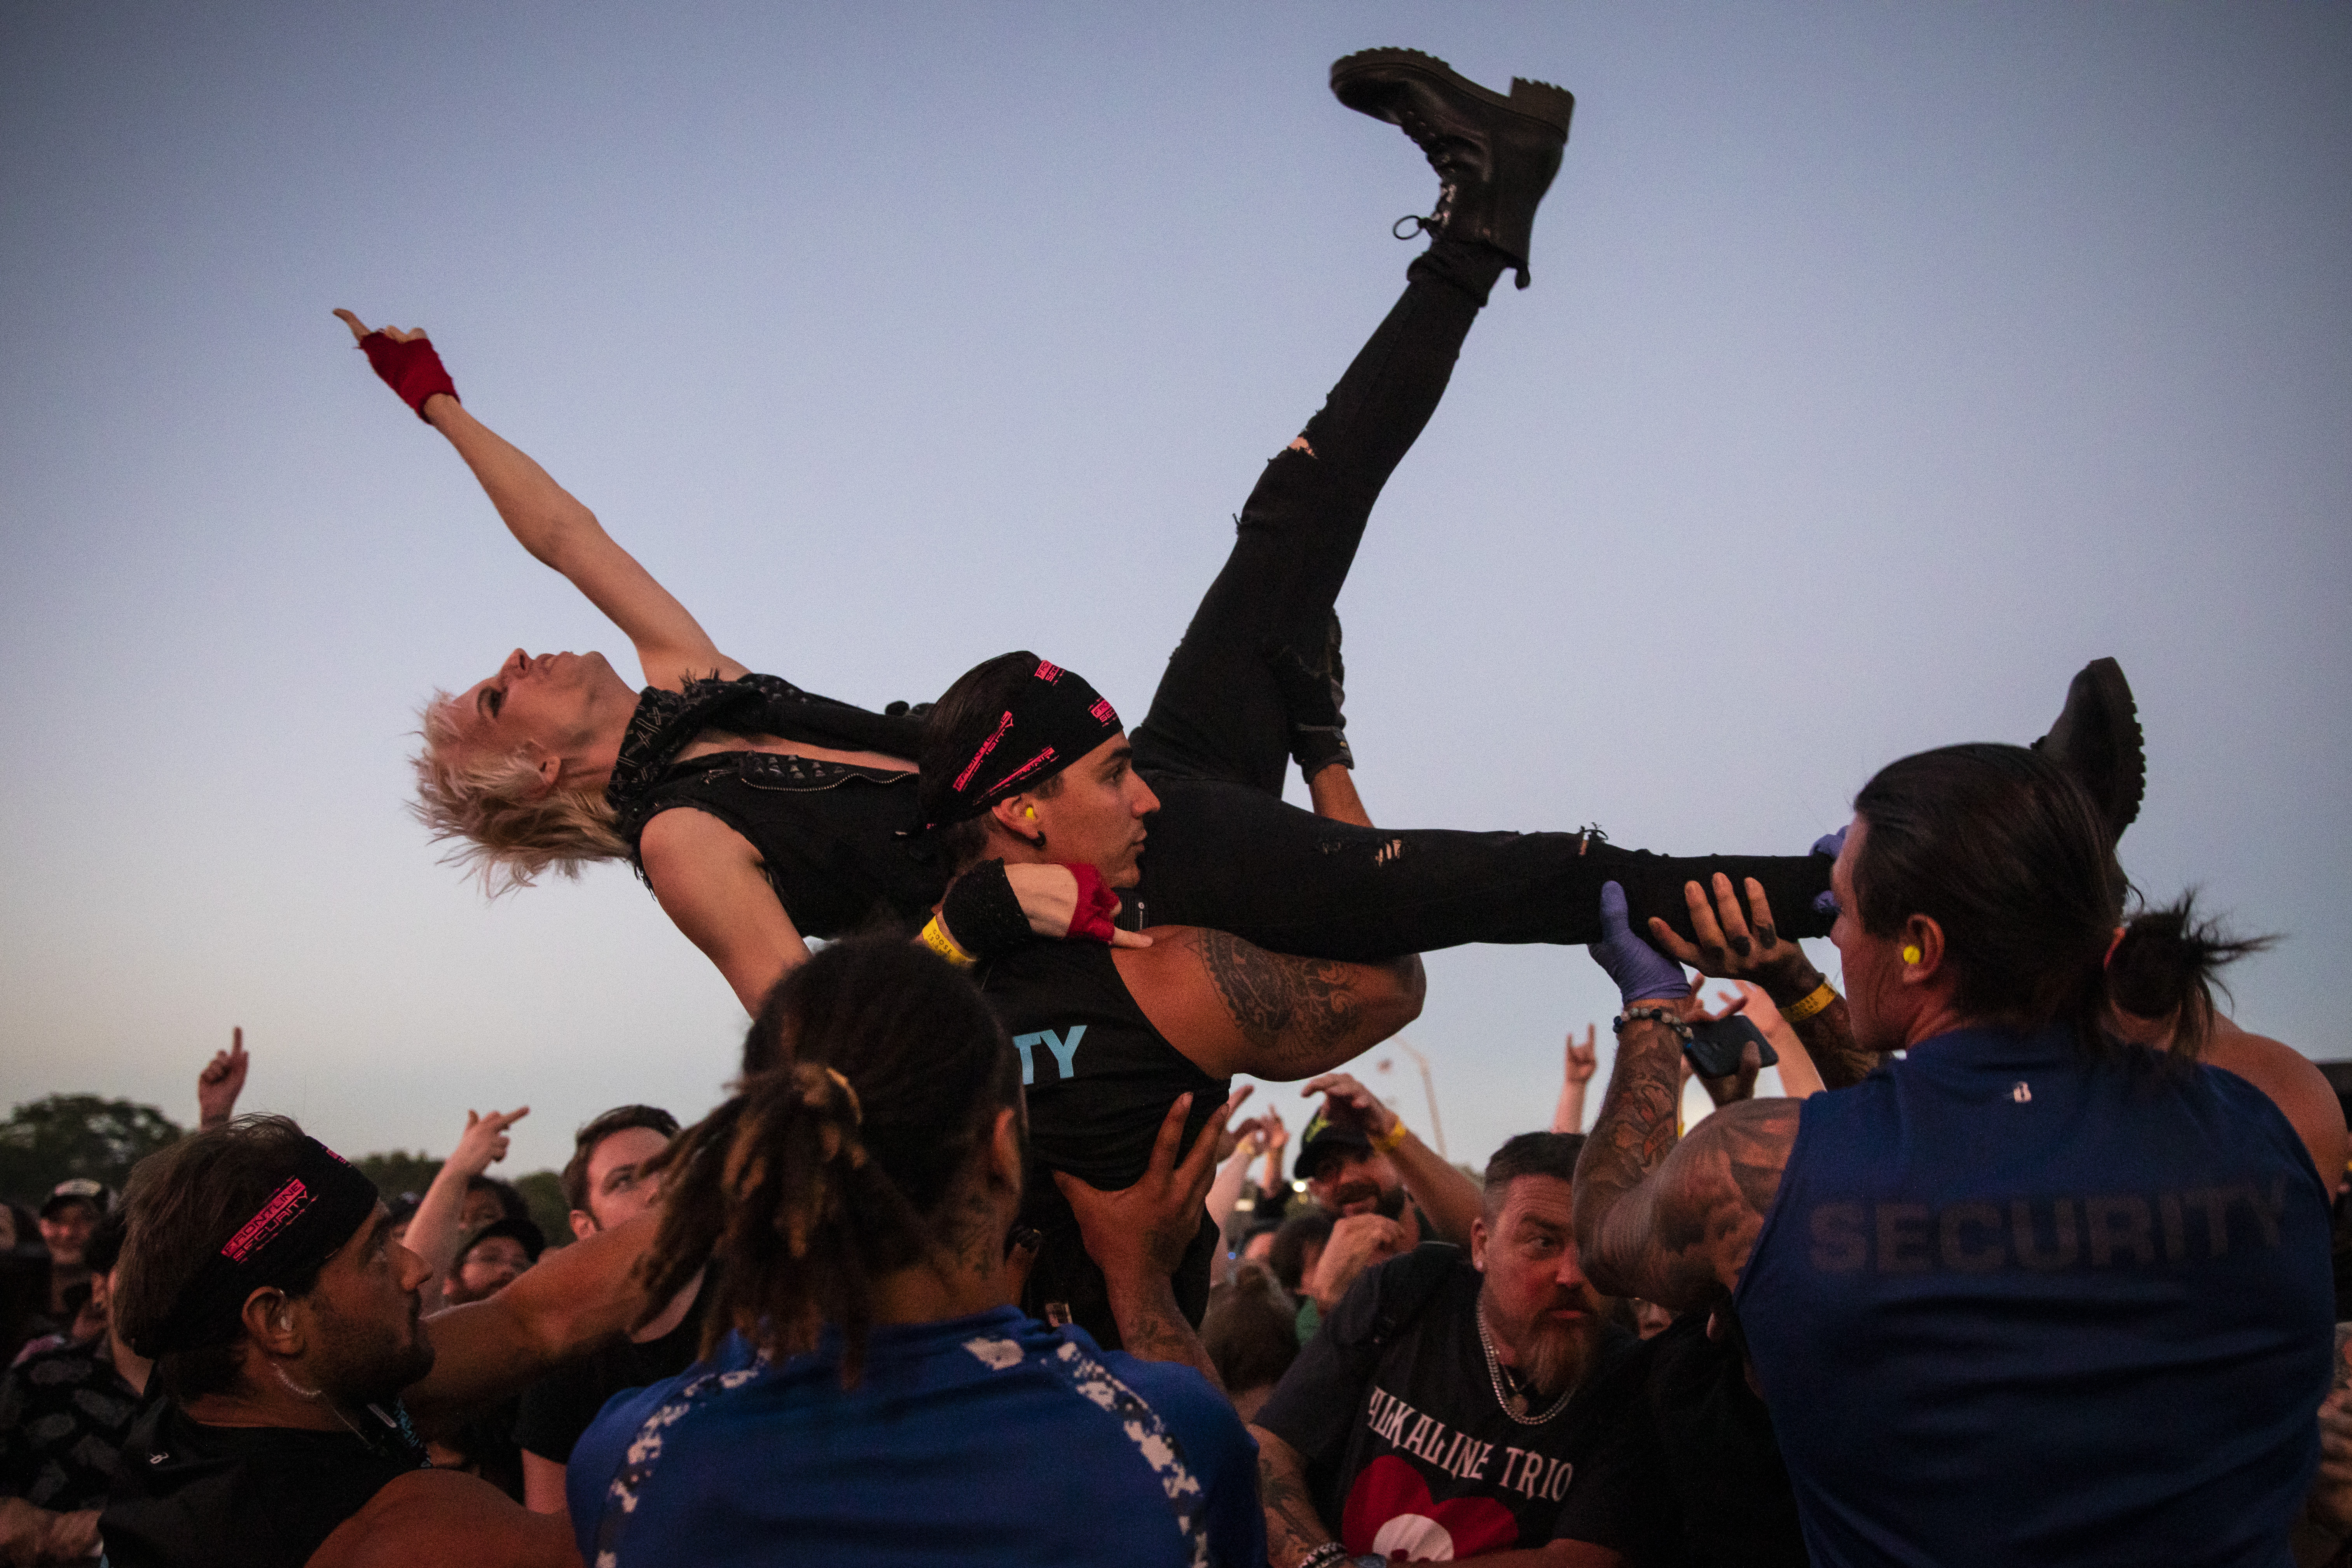 Security lifts a crowd-surfing fan during Alkaline Trio's performance Thursday at Riot Fest.